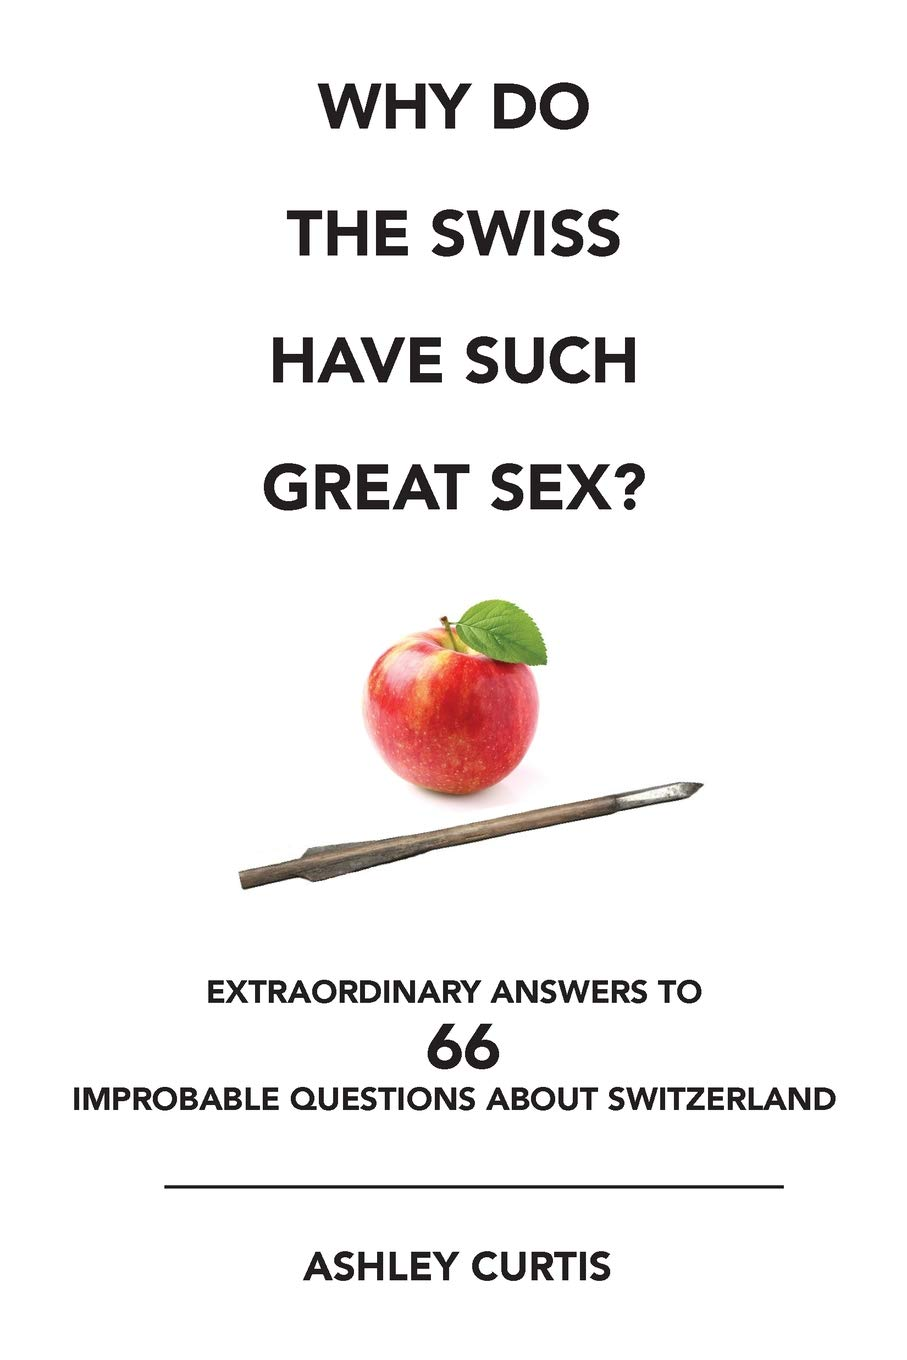 Why Do The Swiss Have Such Great Sex   Extraordinary Answers To 66 Improbable Questions About Switzerland